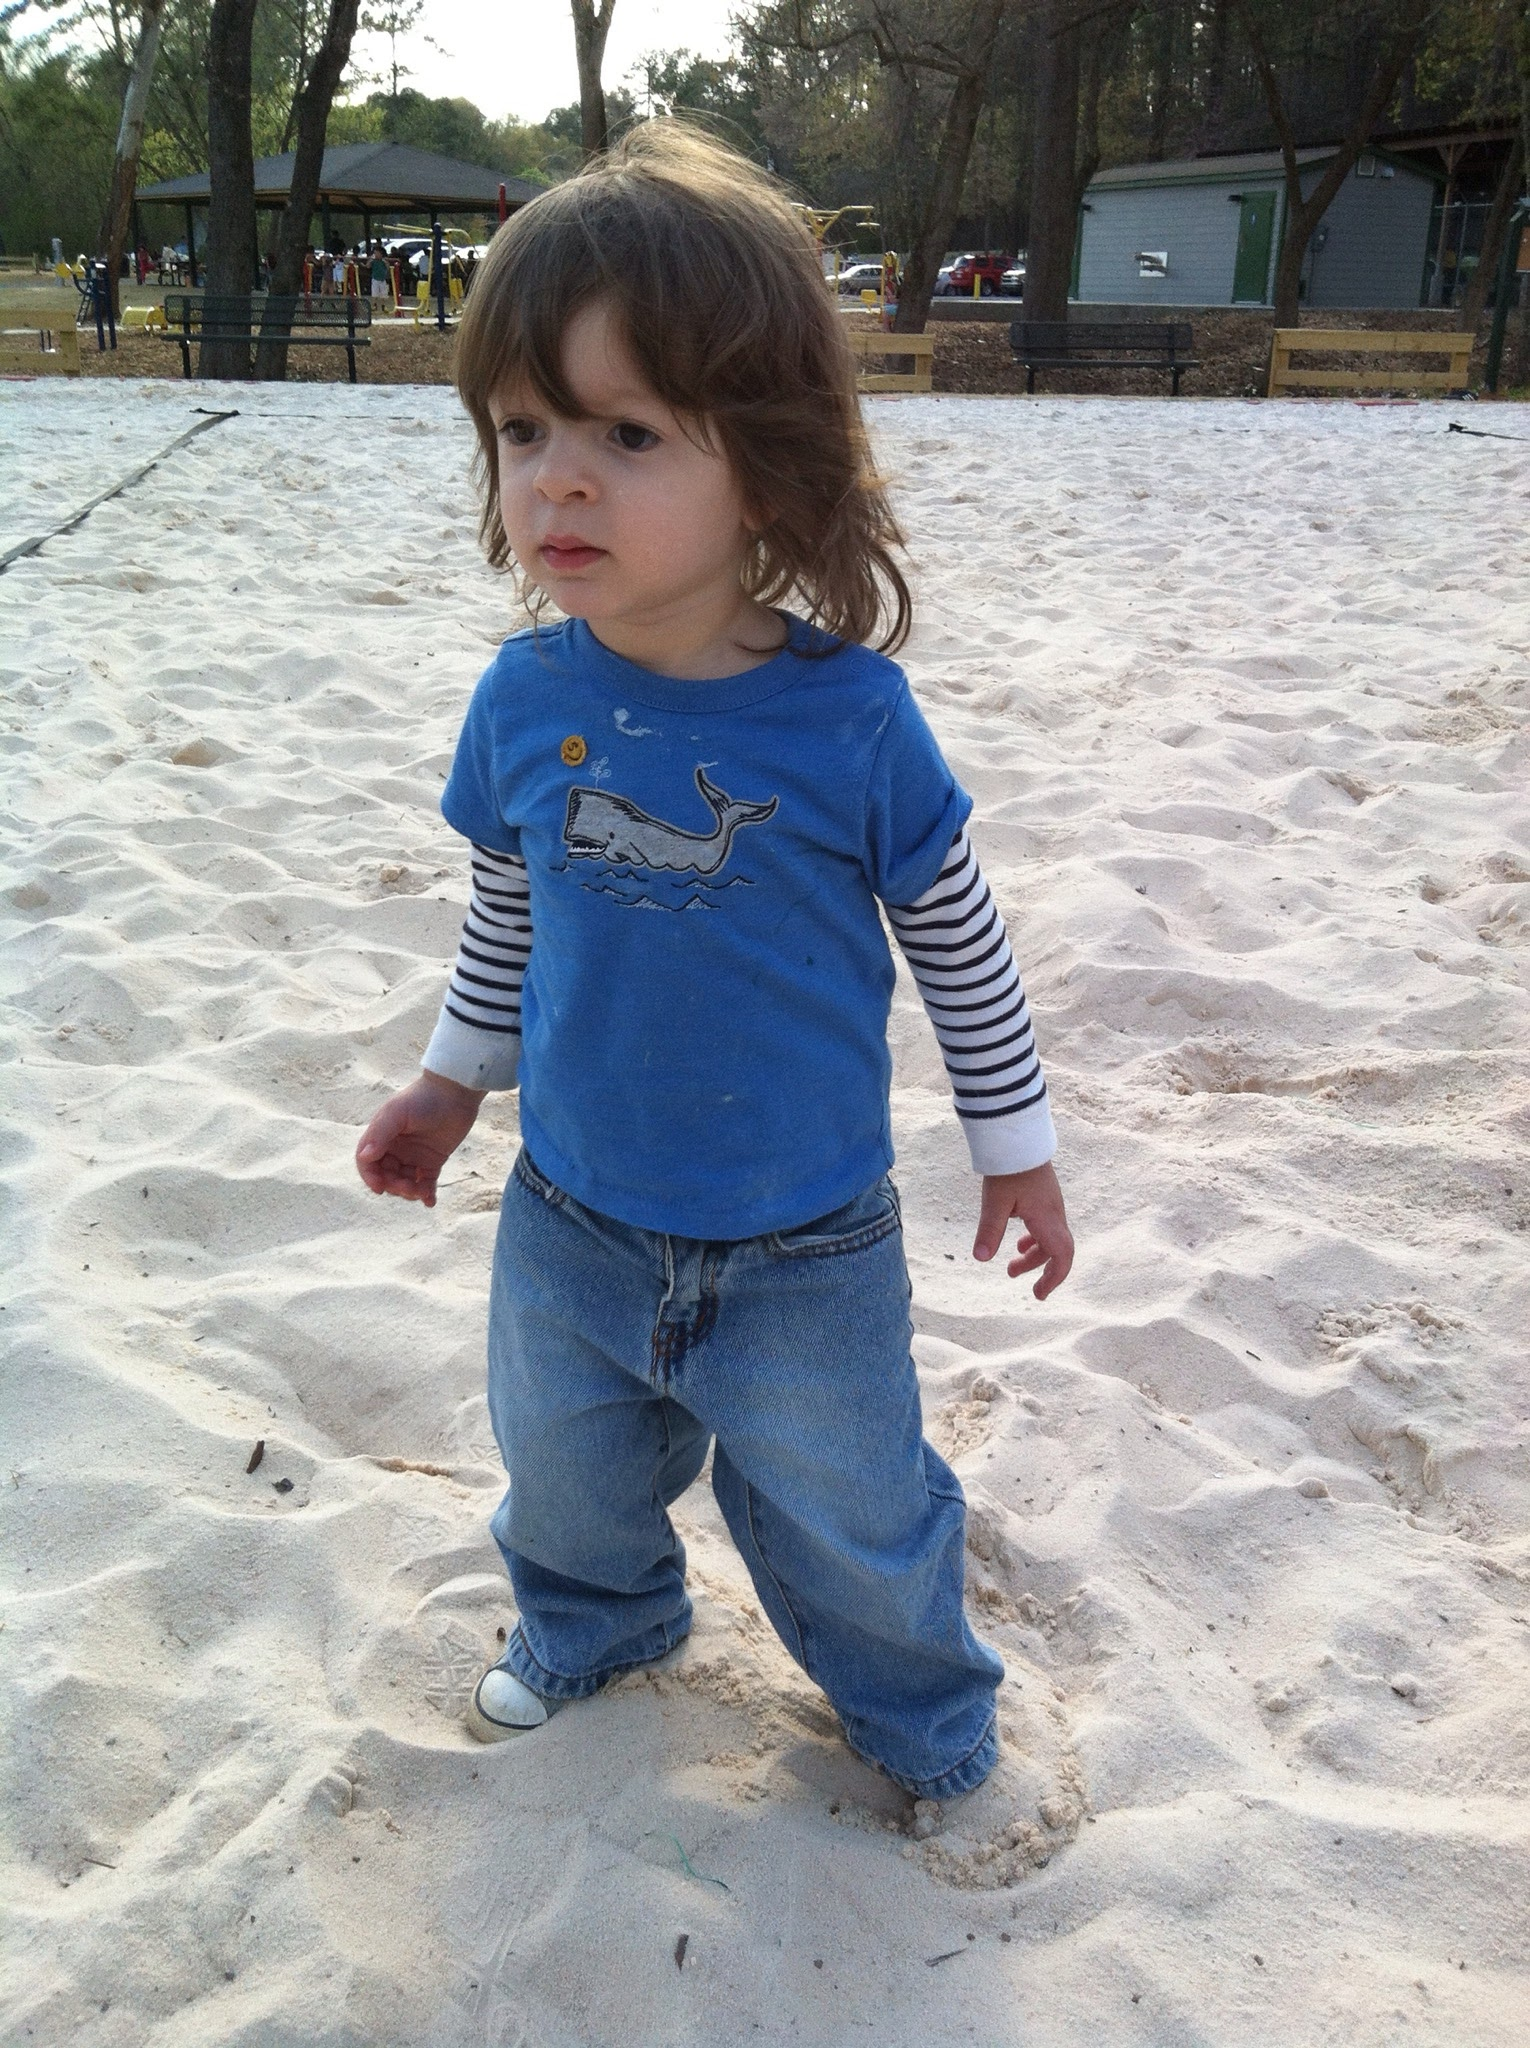 Lucas at 2, playing in the volleyball court sand